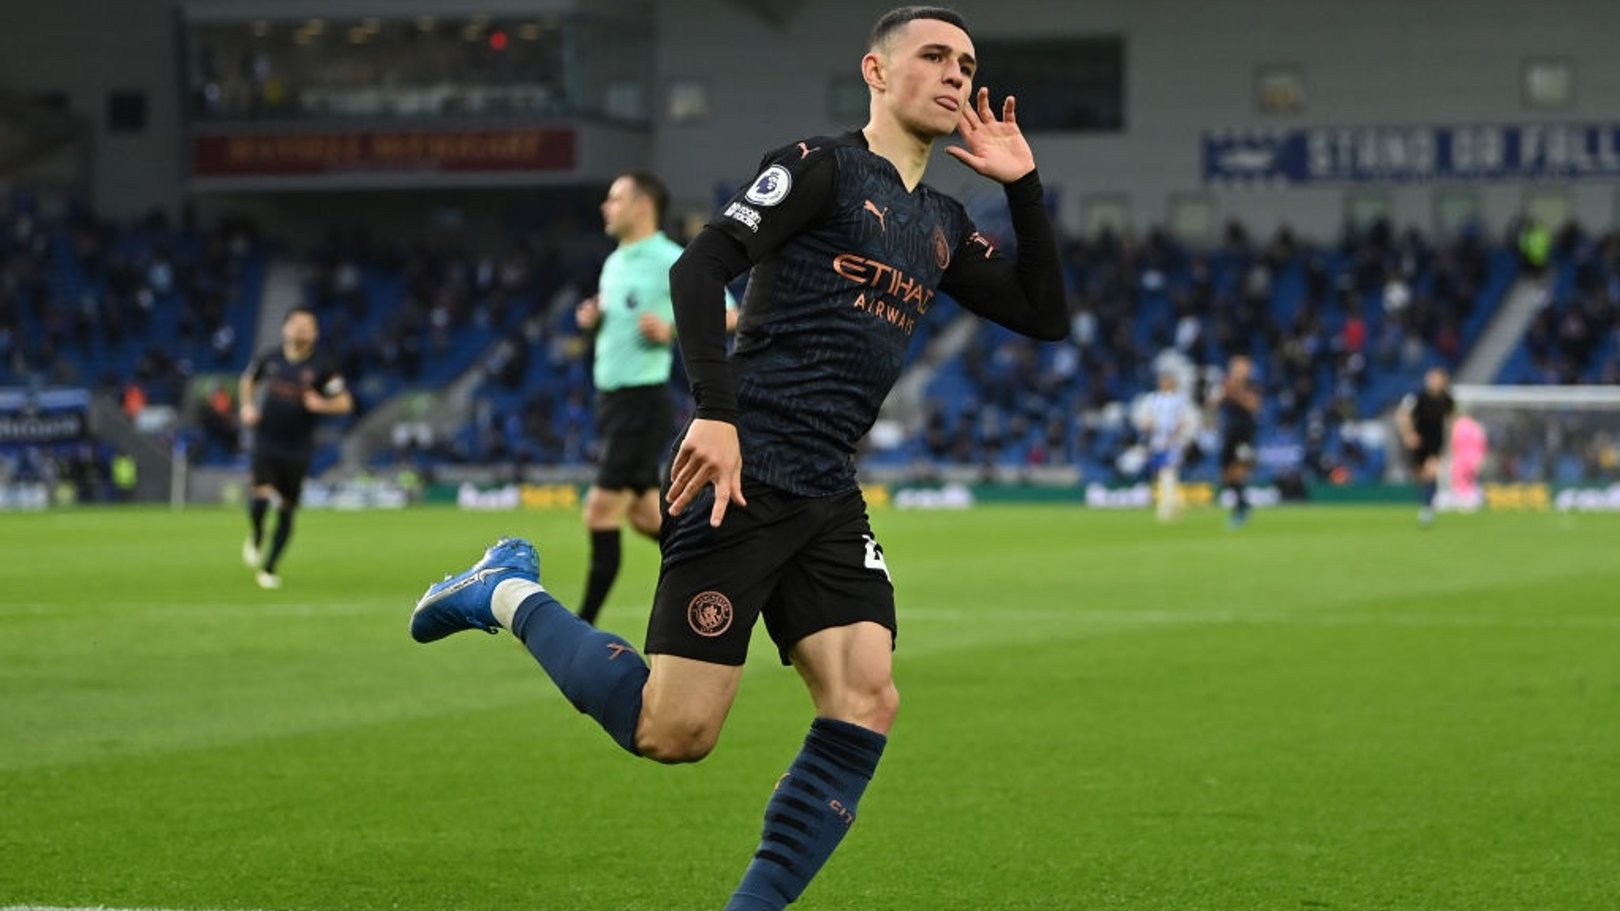 BABY SHARK: Foden wheels away to celebrate his stunning goal.